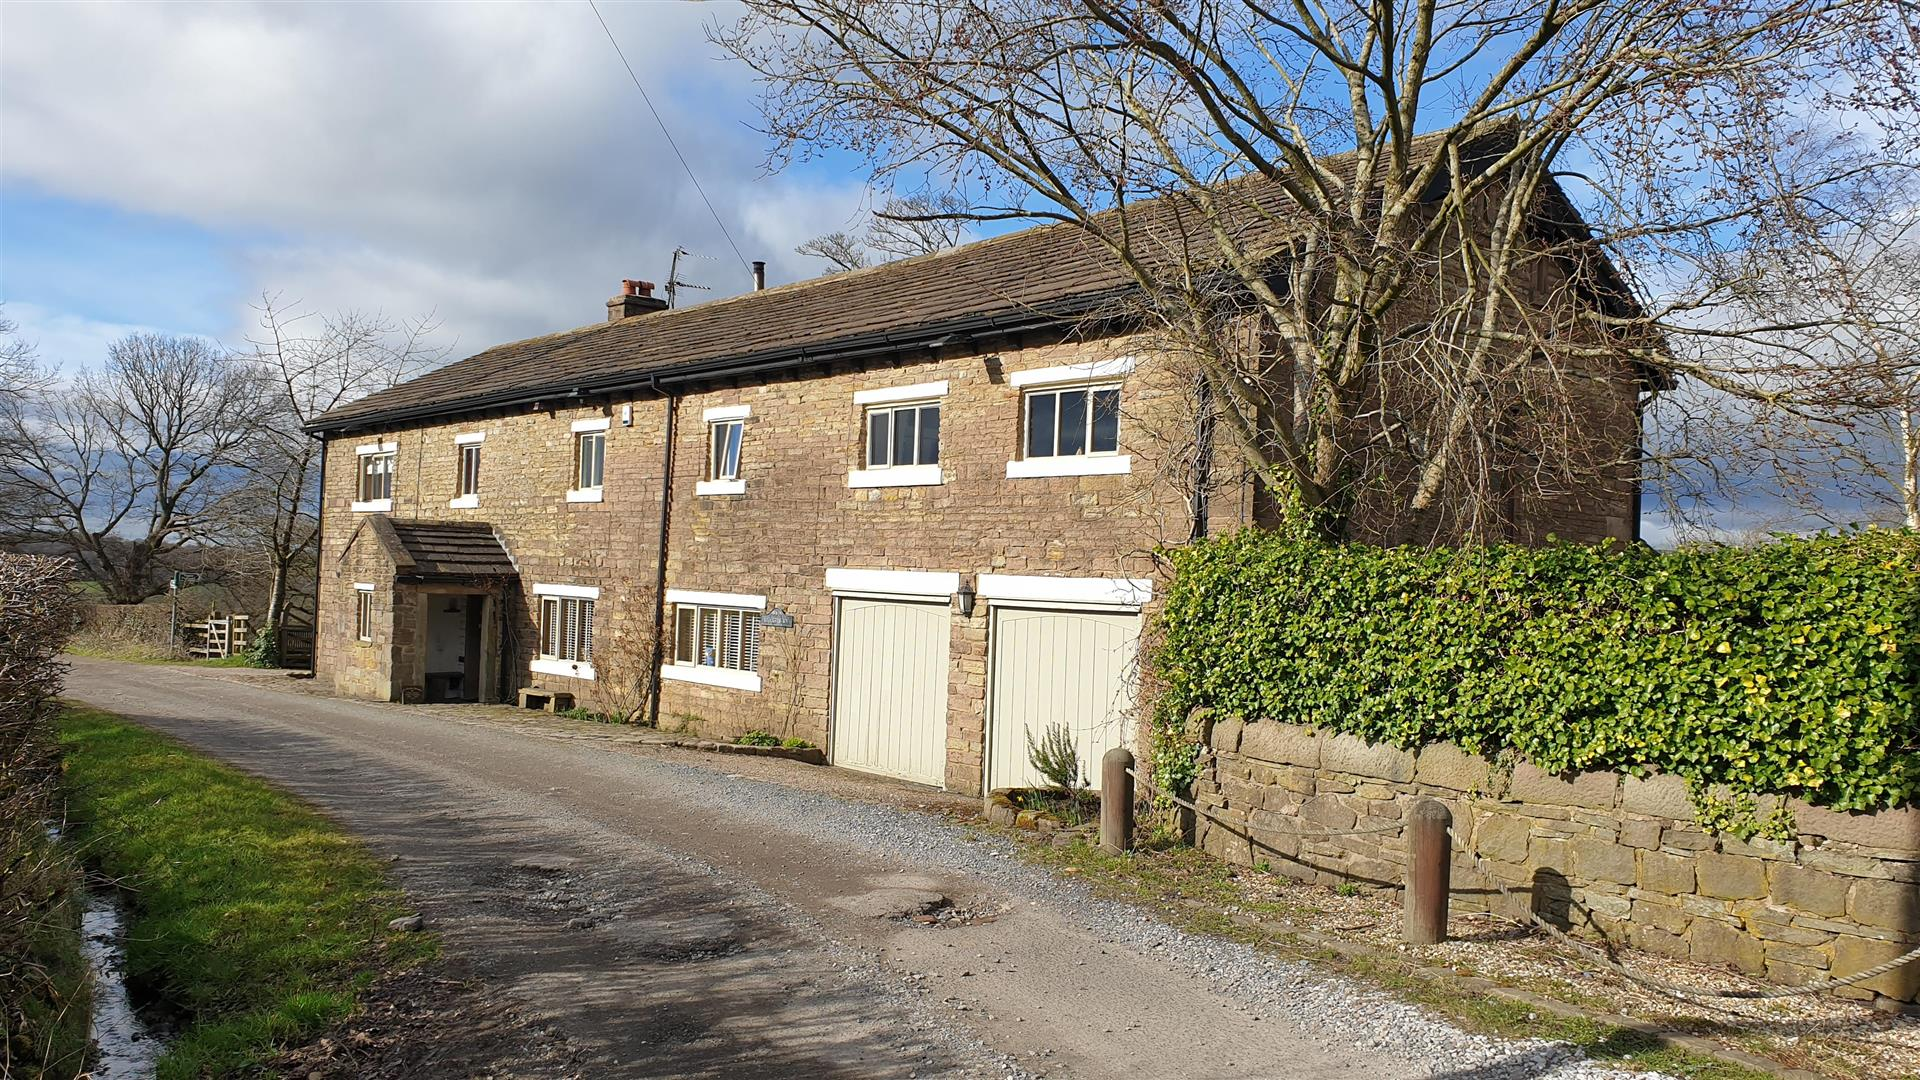 5 Bedroom Barn Conversion For Sale - Main Image